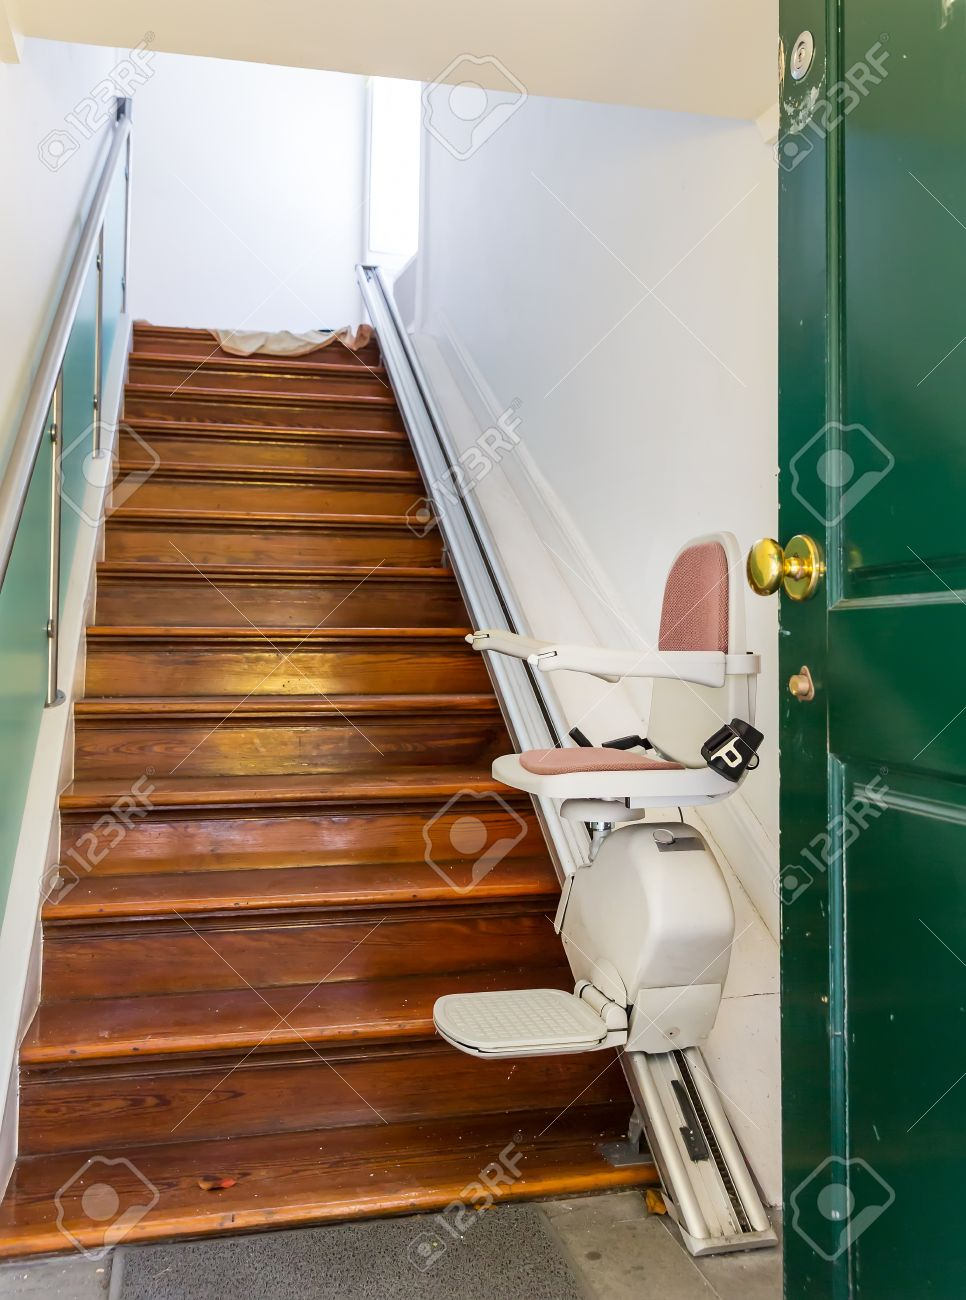 Stairlifts in Westhoughton